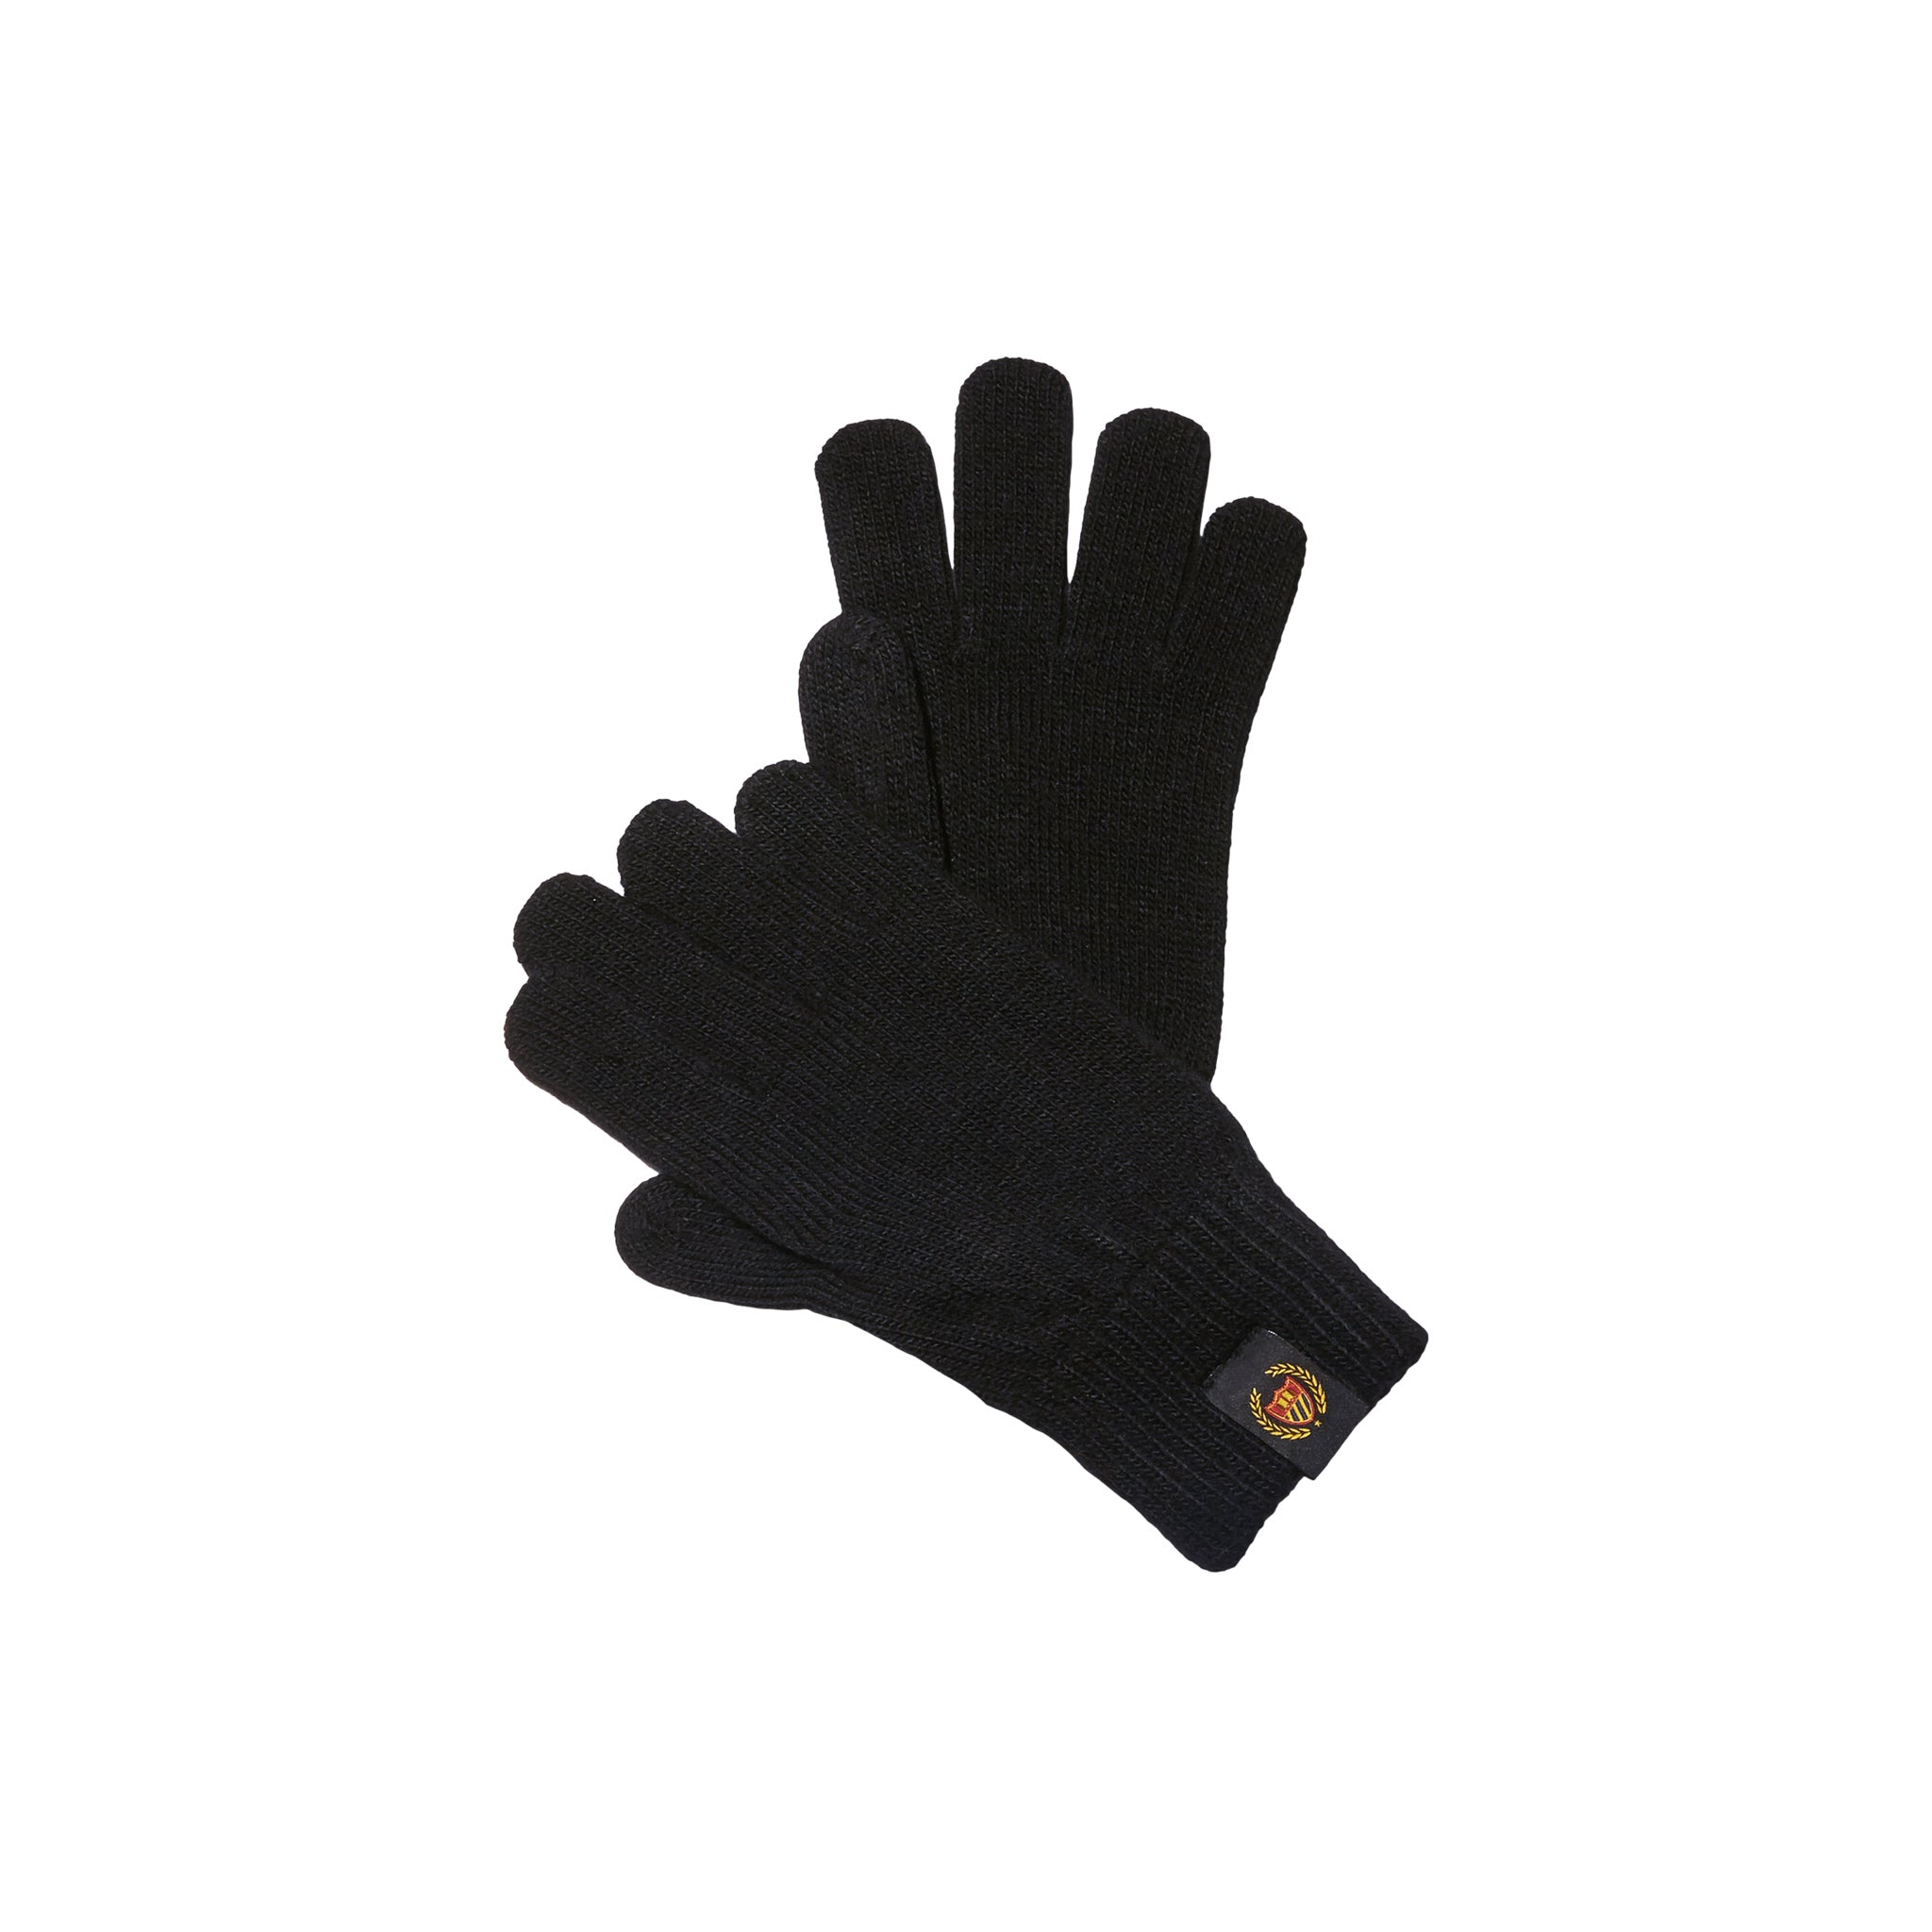 Academy crest Gloves - VINTAGE BLACK